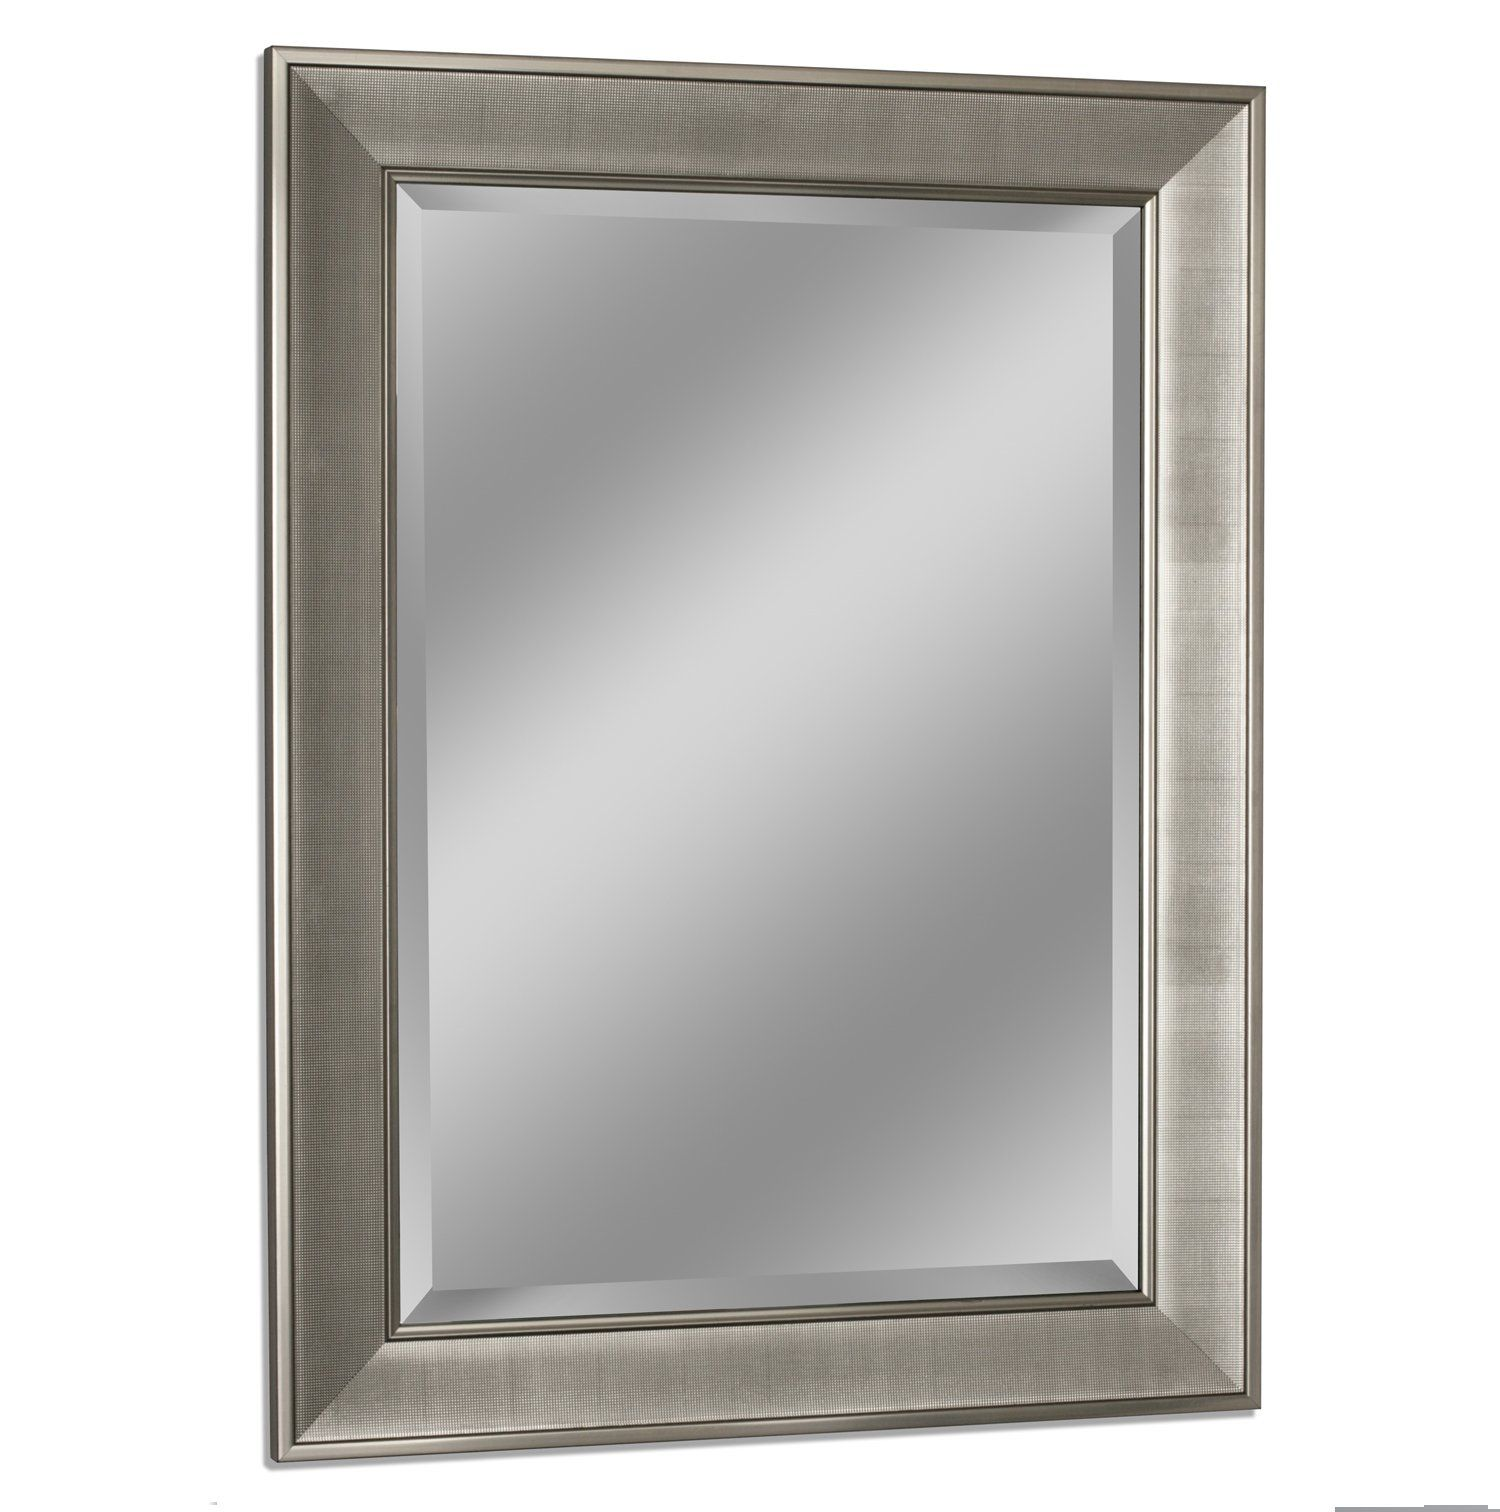 Headwest 8013 Pave Wall Mirror in Brush Nickel For more